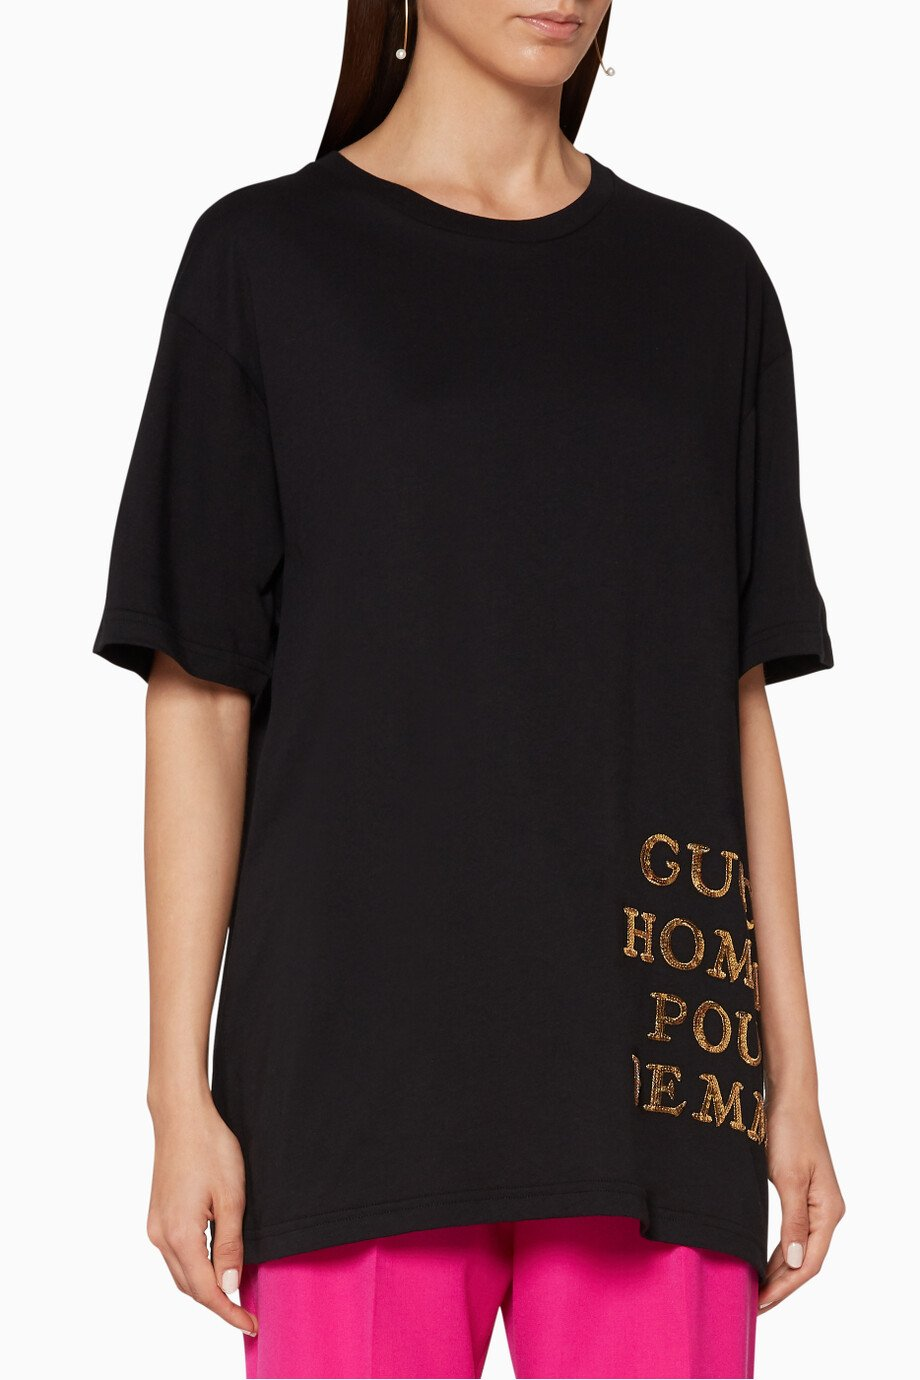 5a7def961f3 Shop Gucci Black Oversized T-Shirt for Women